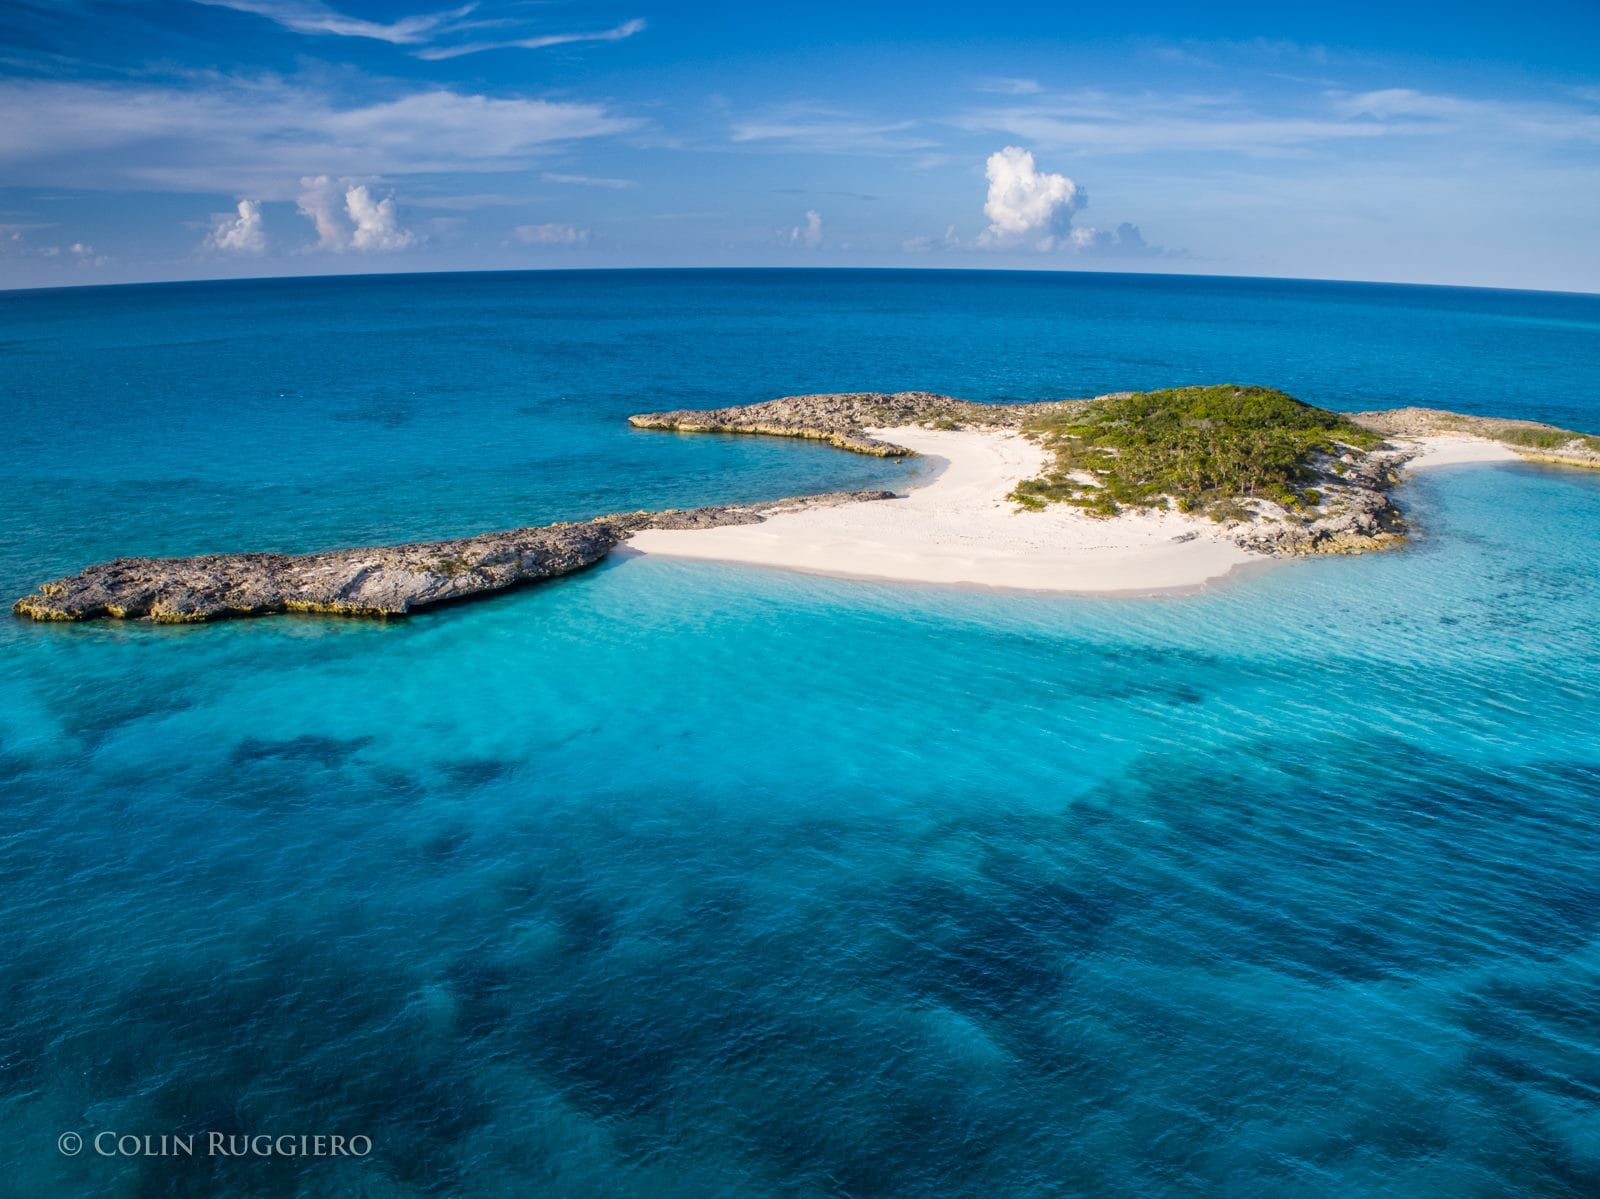 Paradise found in the Exumas | Credit: Colin Ruggiero